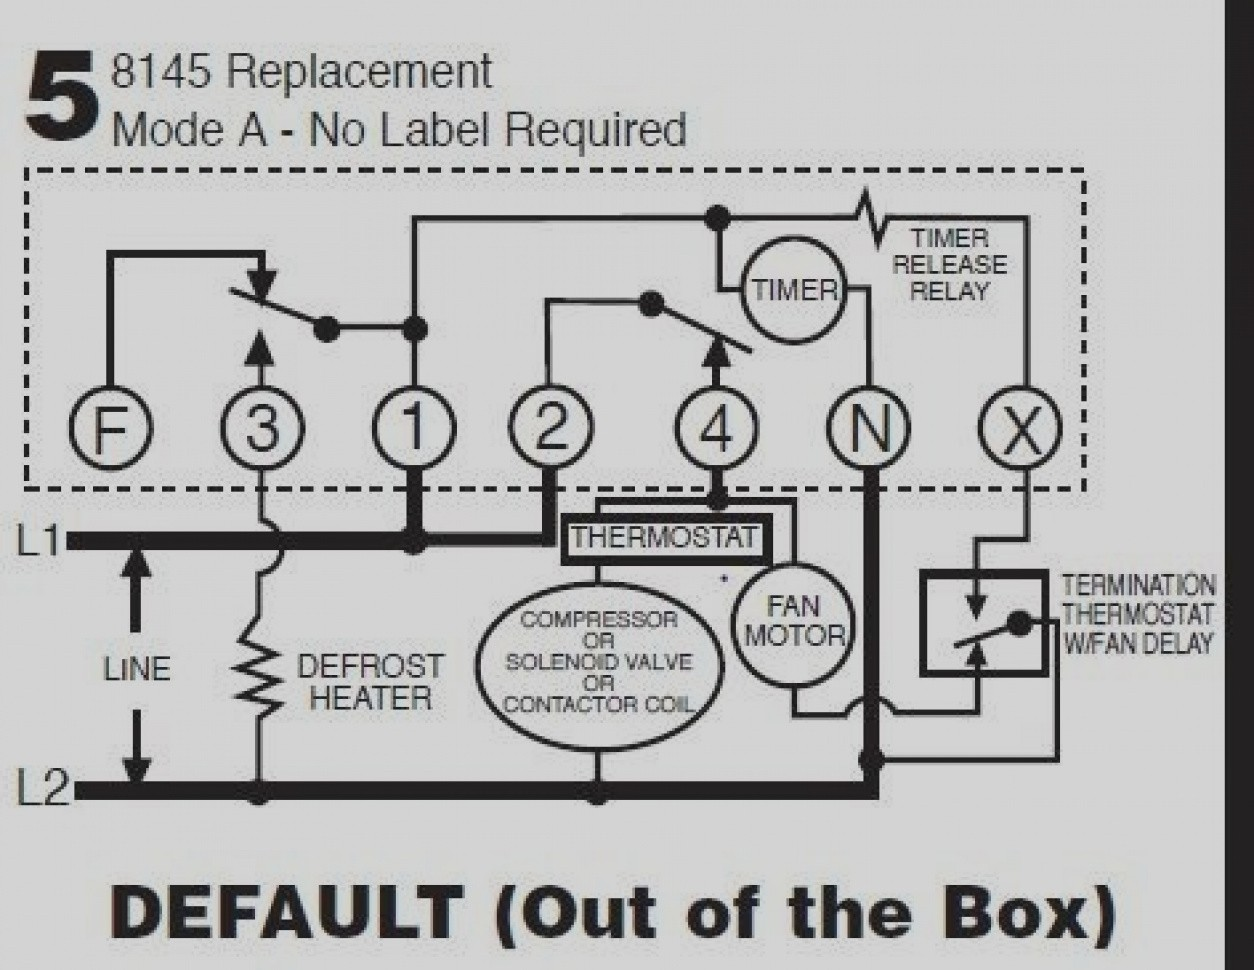 Paragon Defrost Timer 8145 20 Wiring Diagram from static-cdn.imageservice.cloud